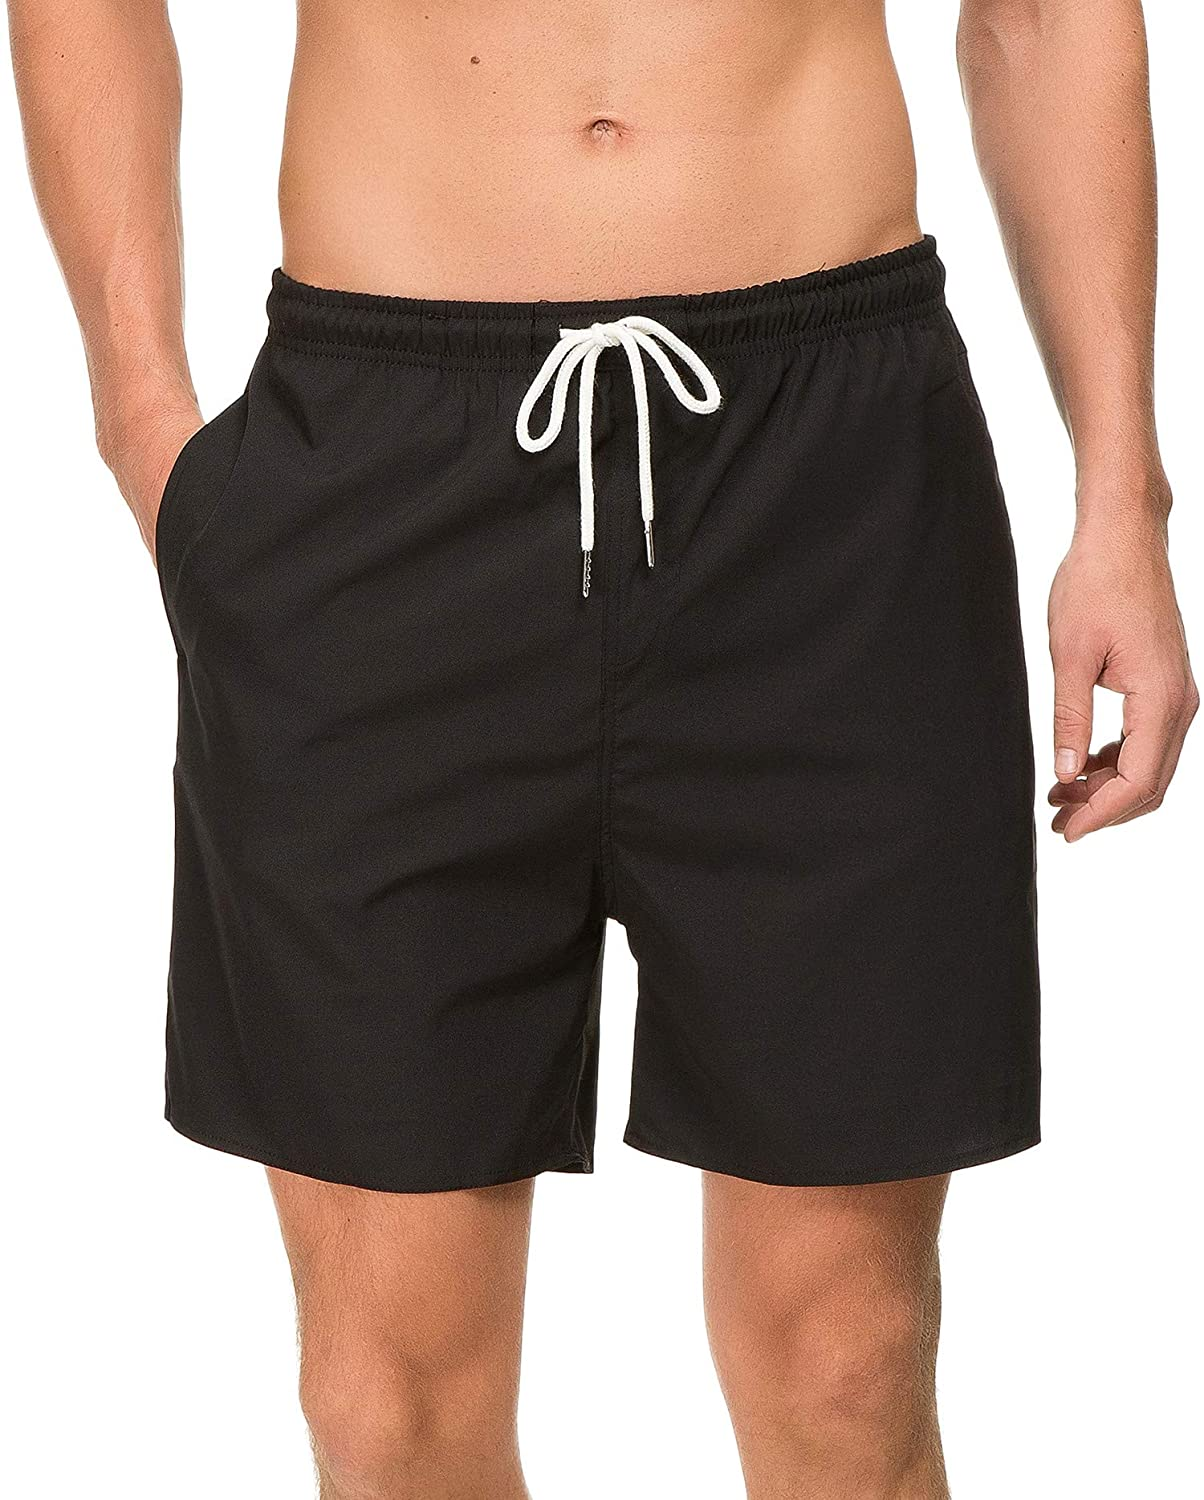 c5038396f0 Amazon.com: Janmid Mens Slim Fit Quick Dry Swim Shorts Swim Trunks Mens  Bathing Suits with Mesh Lining: Clothing